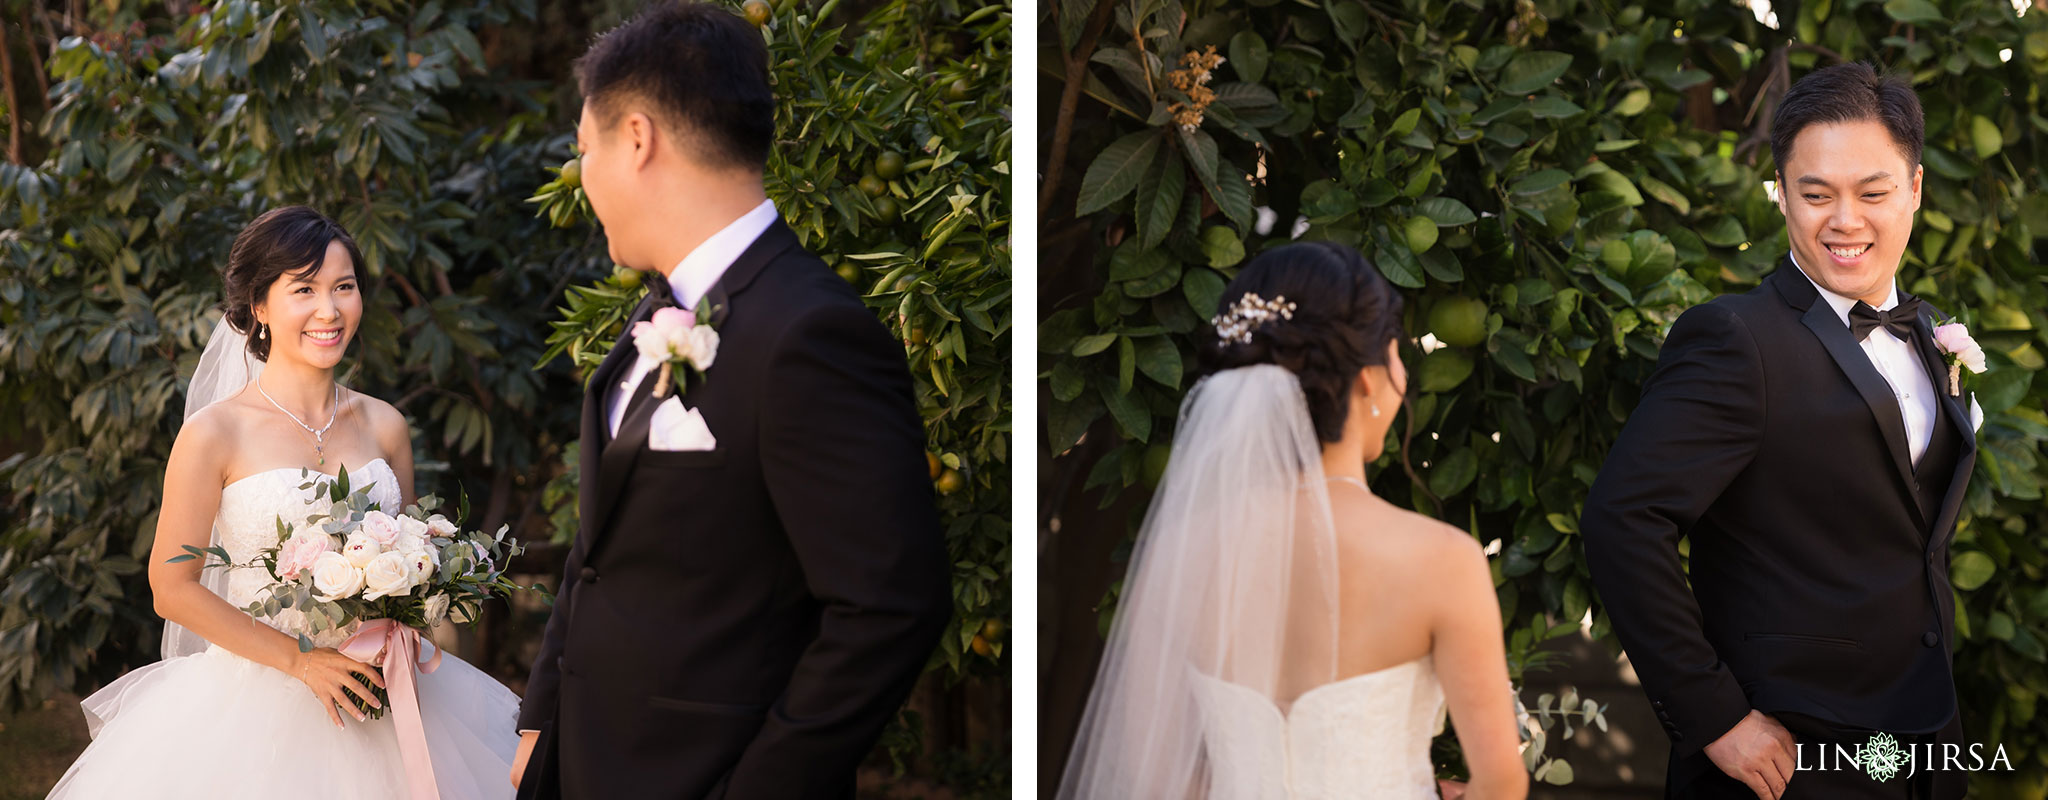 12 brookside golf club pasadena first look wedding photography